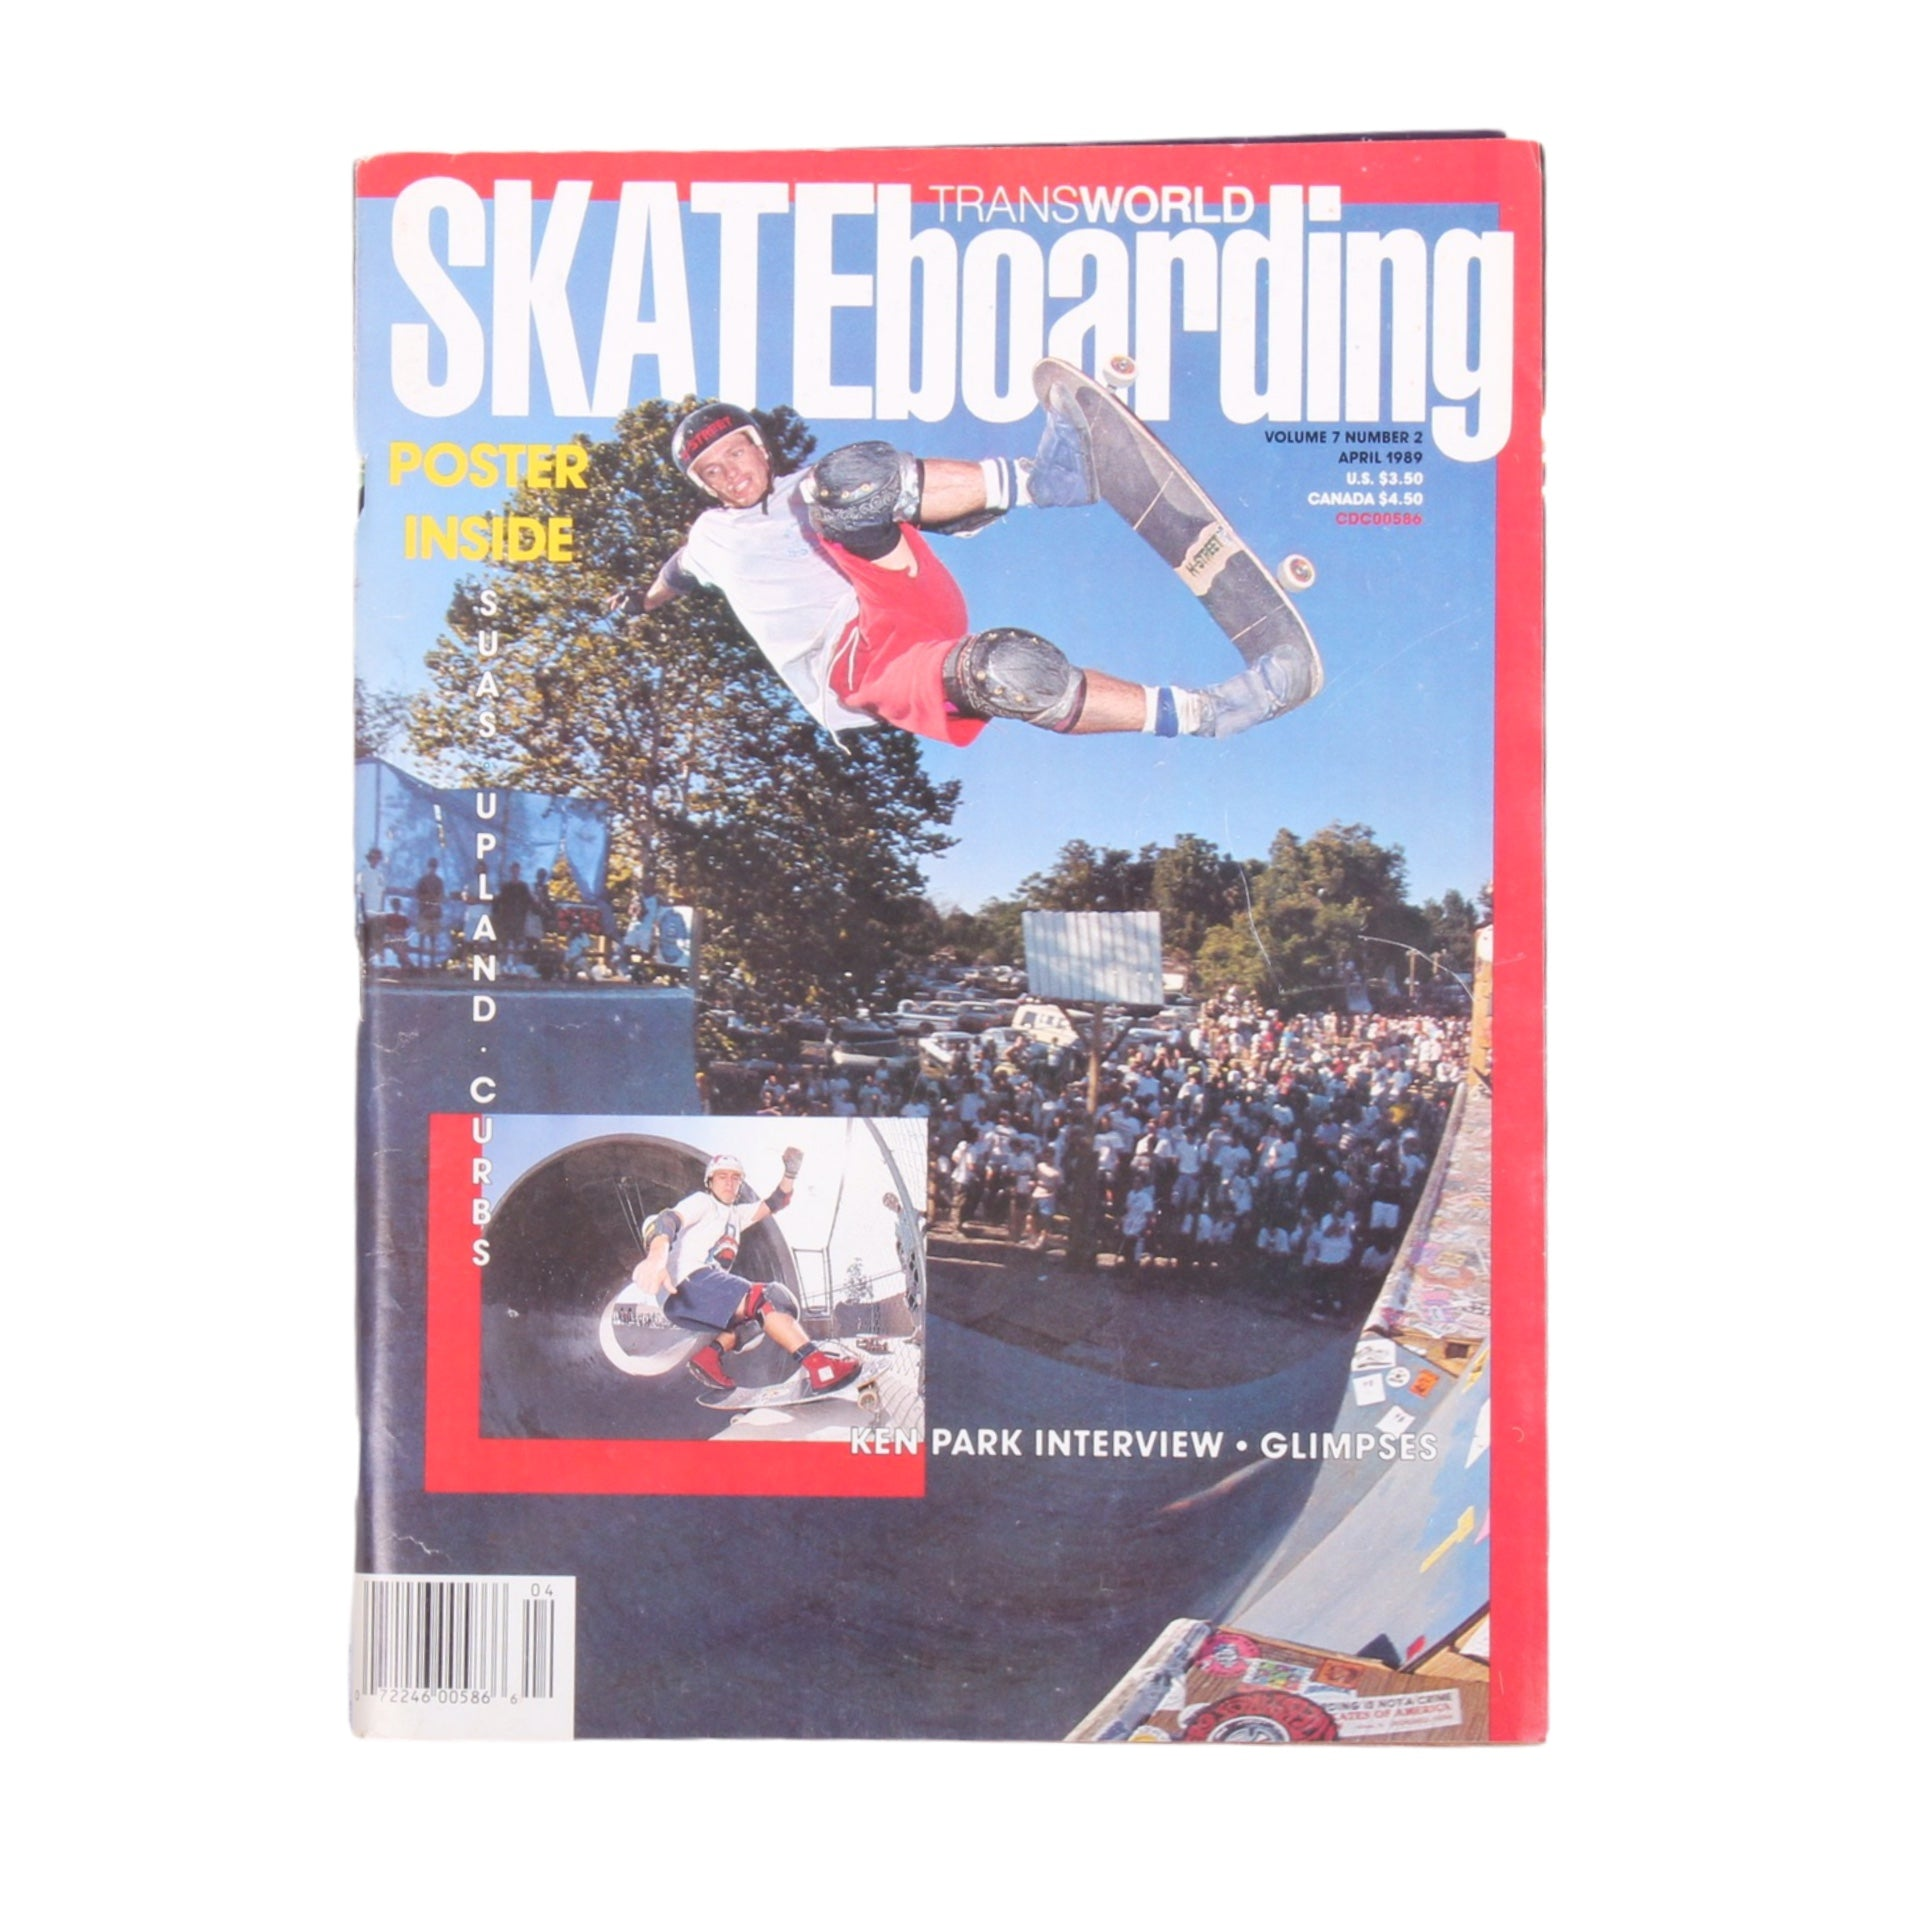 Overripe Transworld Skateboarding Magazine TWS April 1989